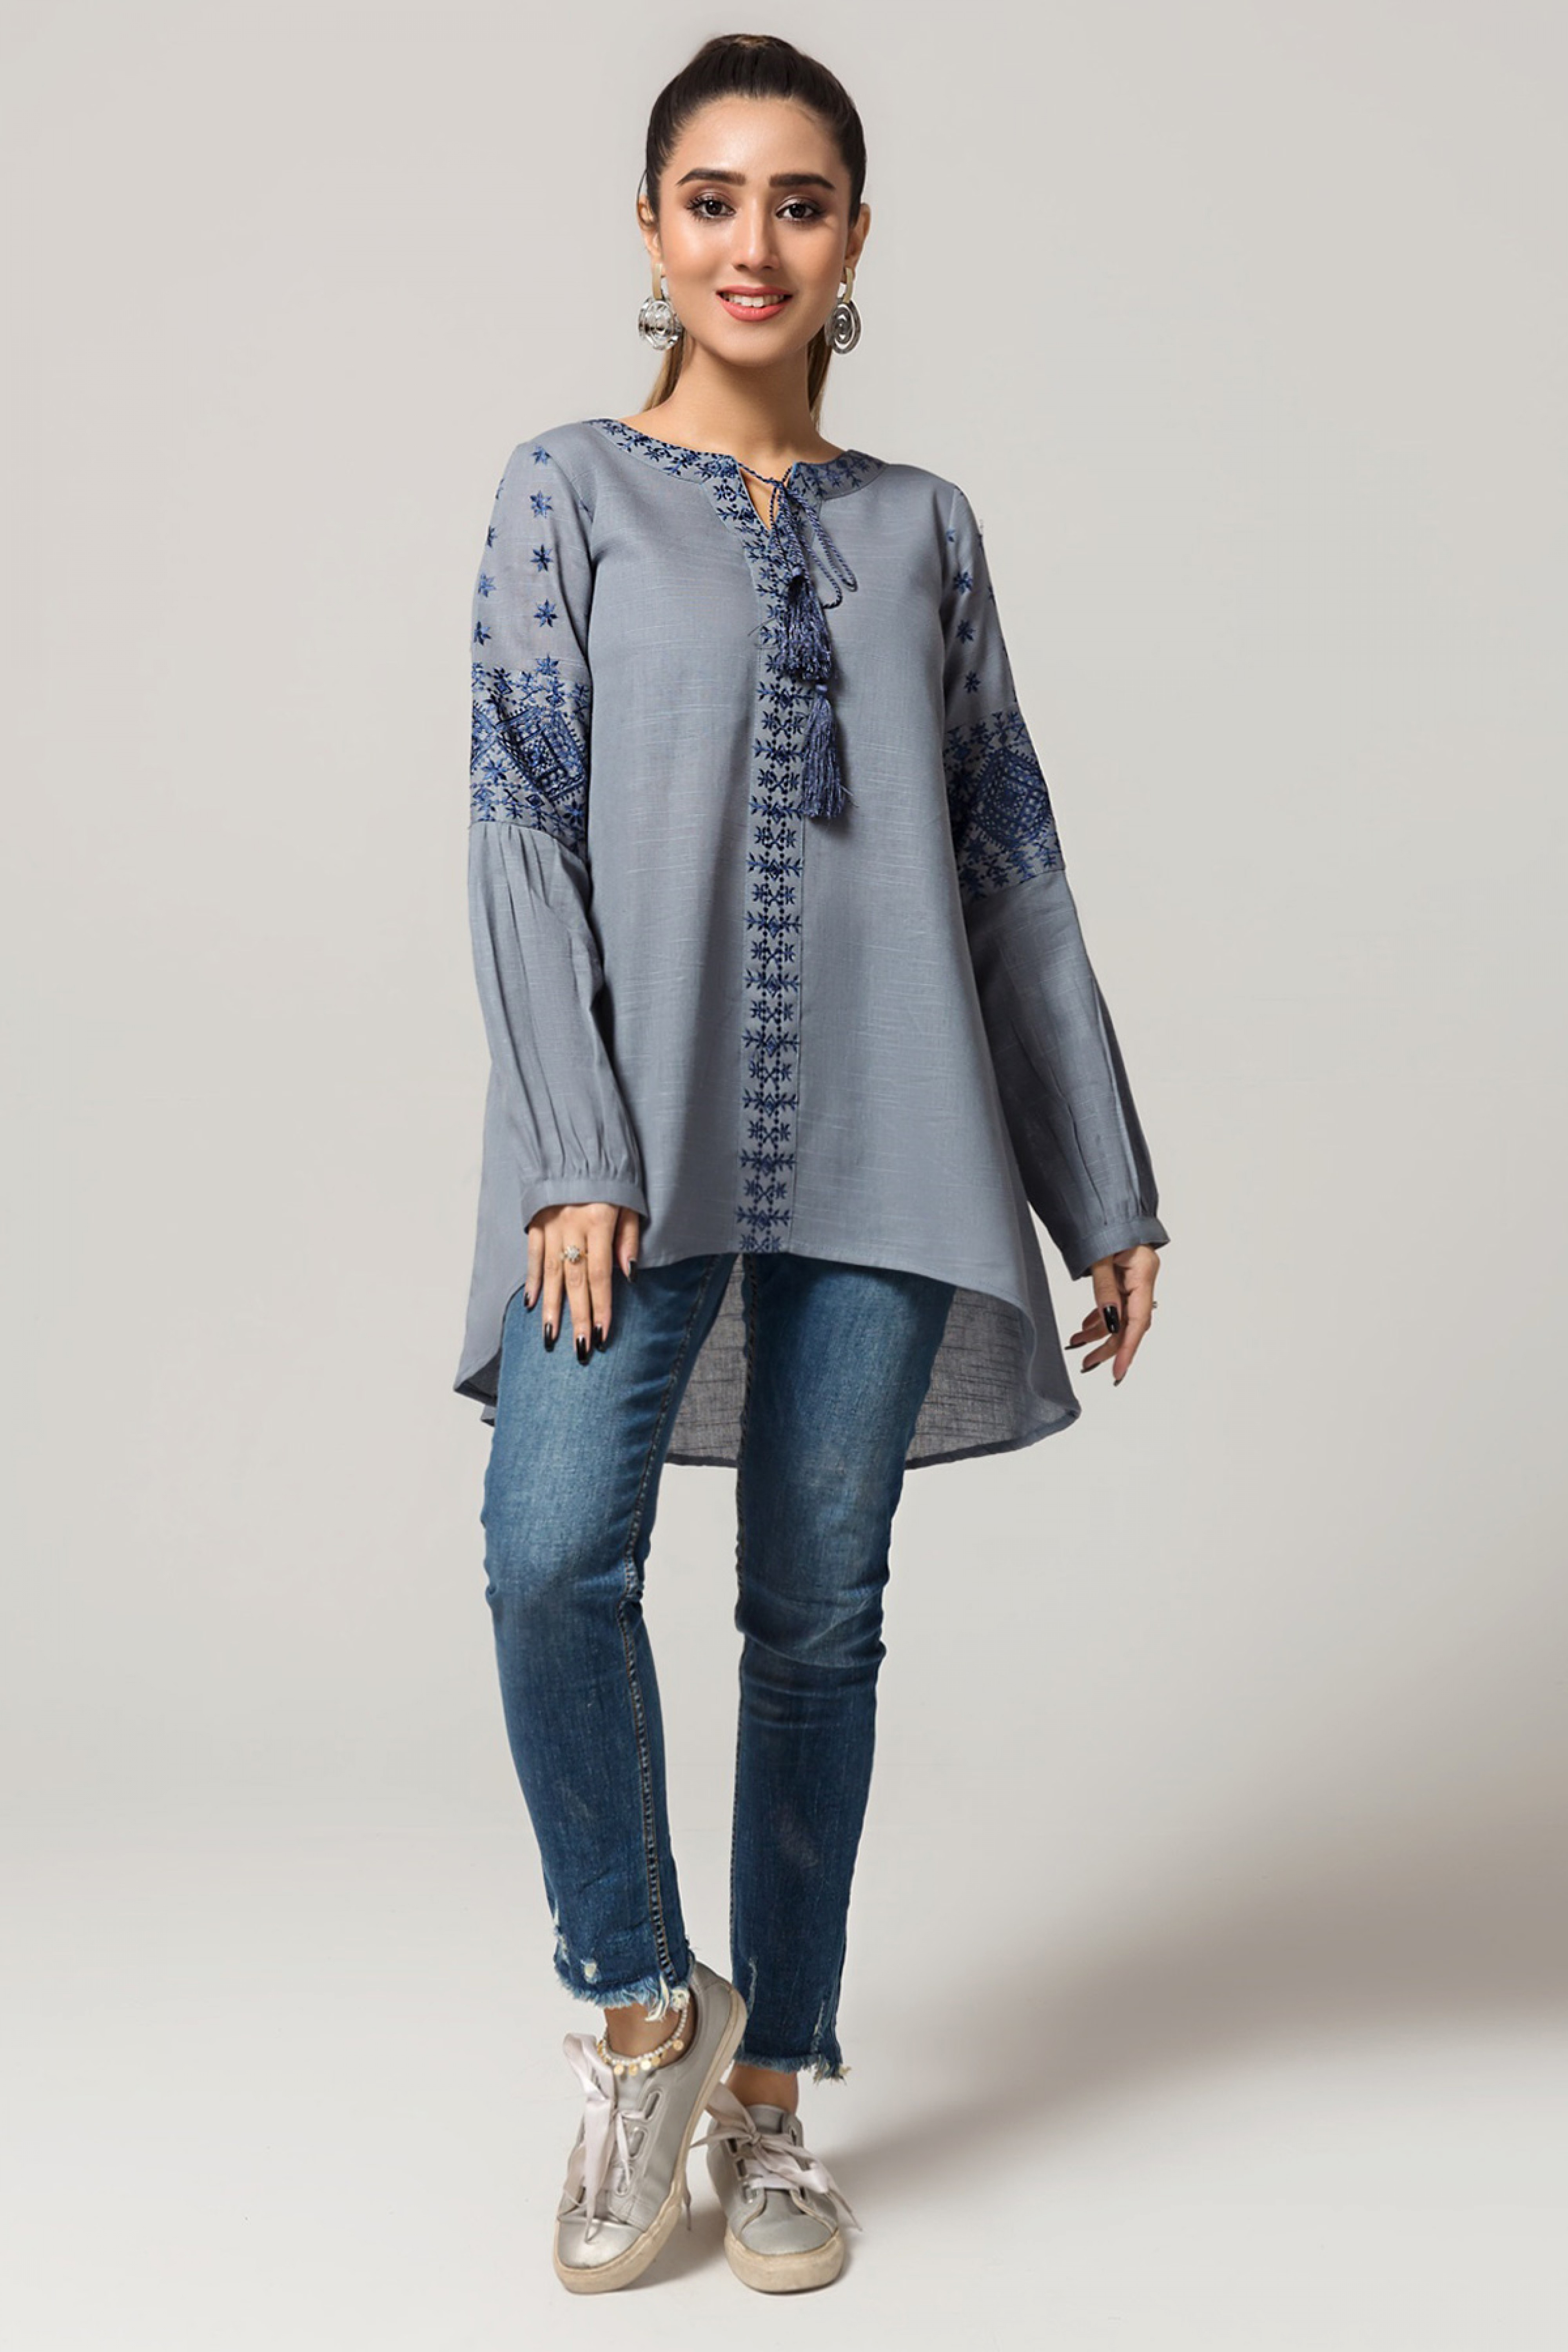 NIGHT FALL(Embroidered Top)